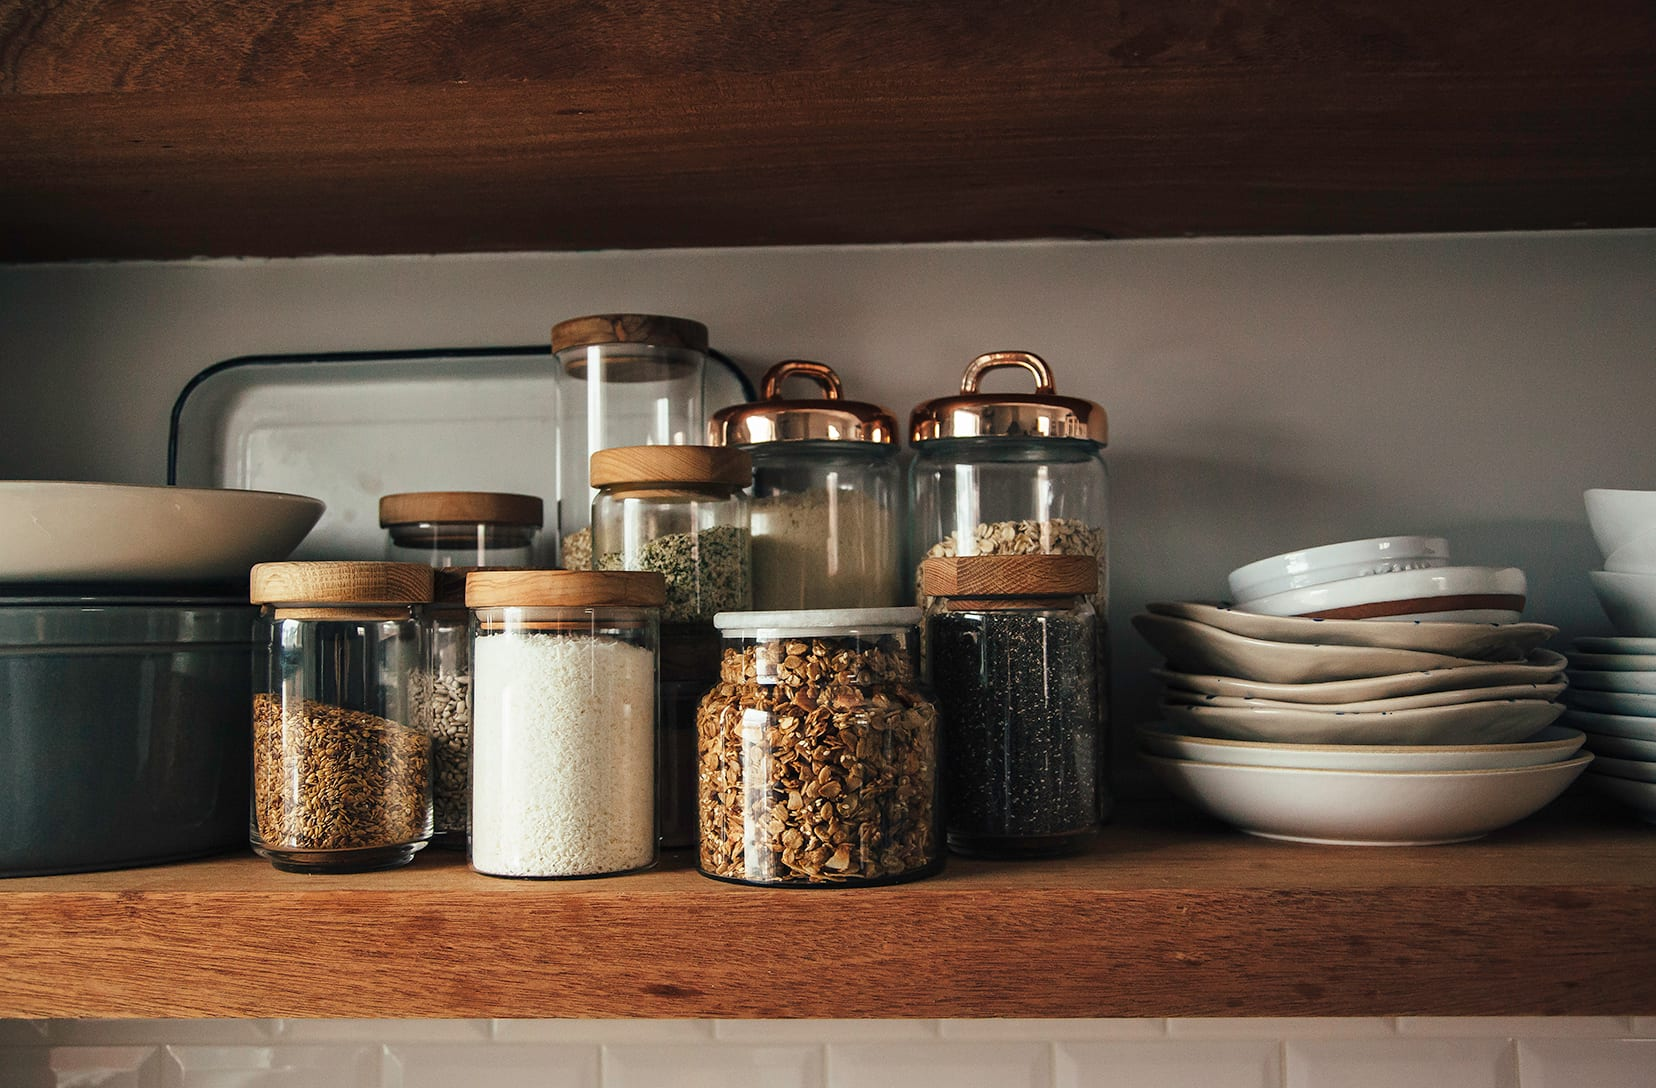 Image shows an open kitchen shelf with jars of seeds, grains, coconut, and granola.